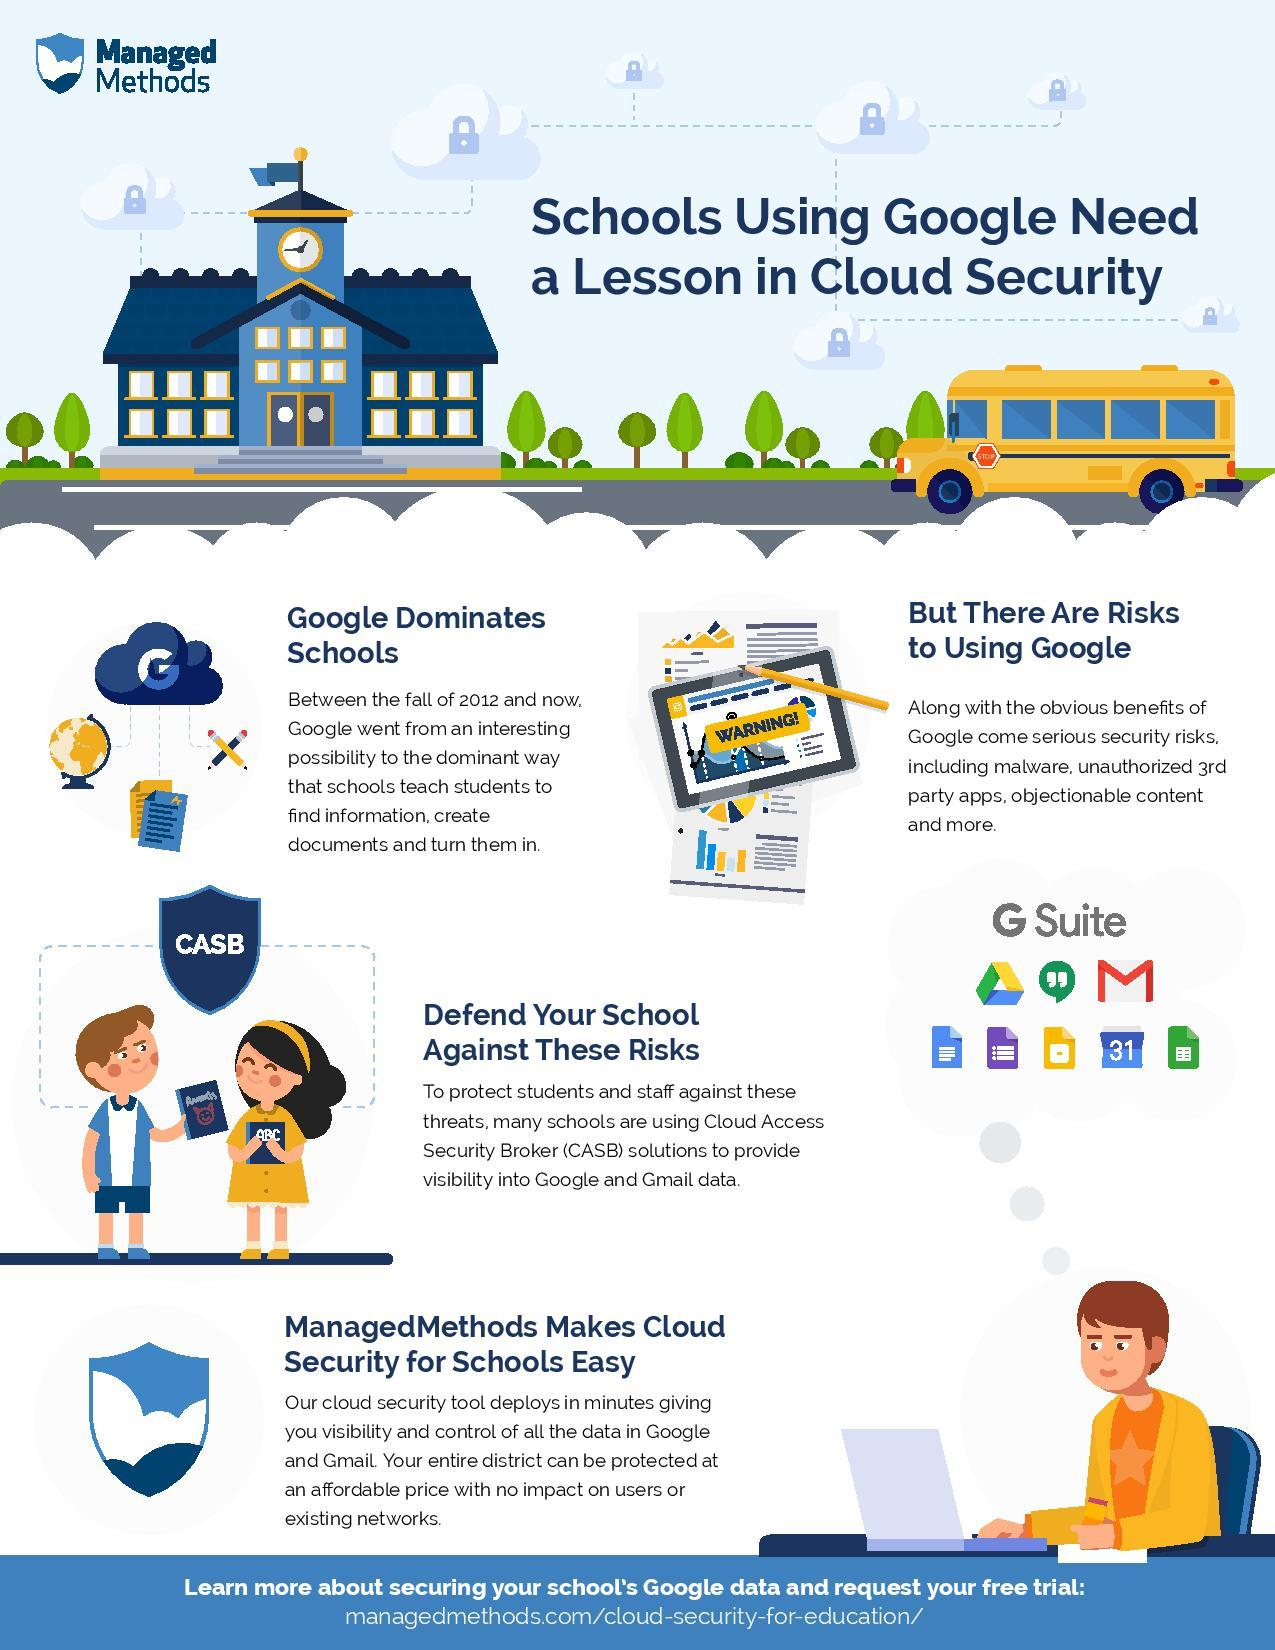 Schools Using Google Need a Lesson in Cloud Security ...